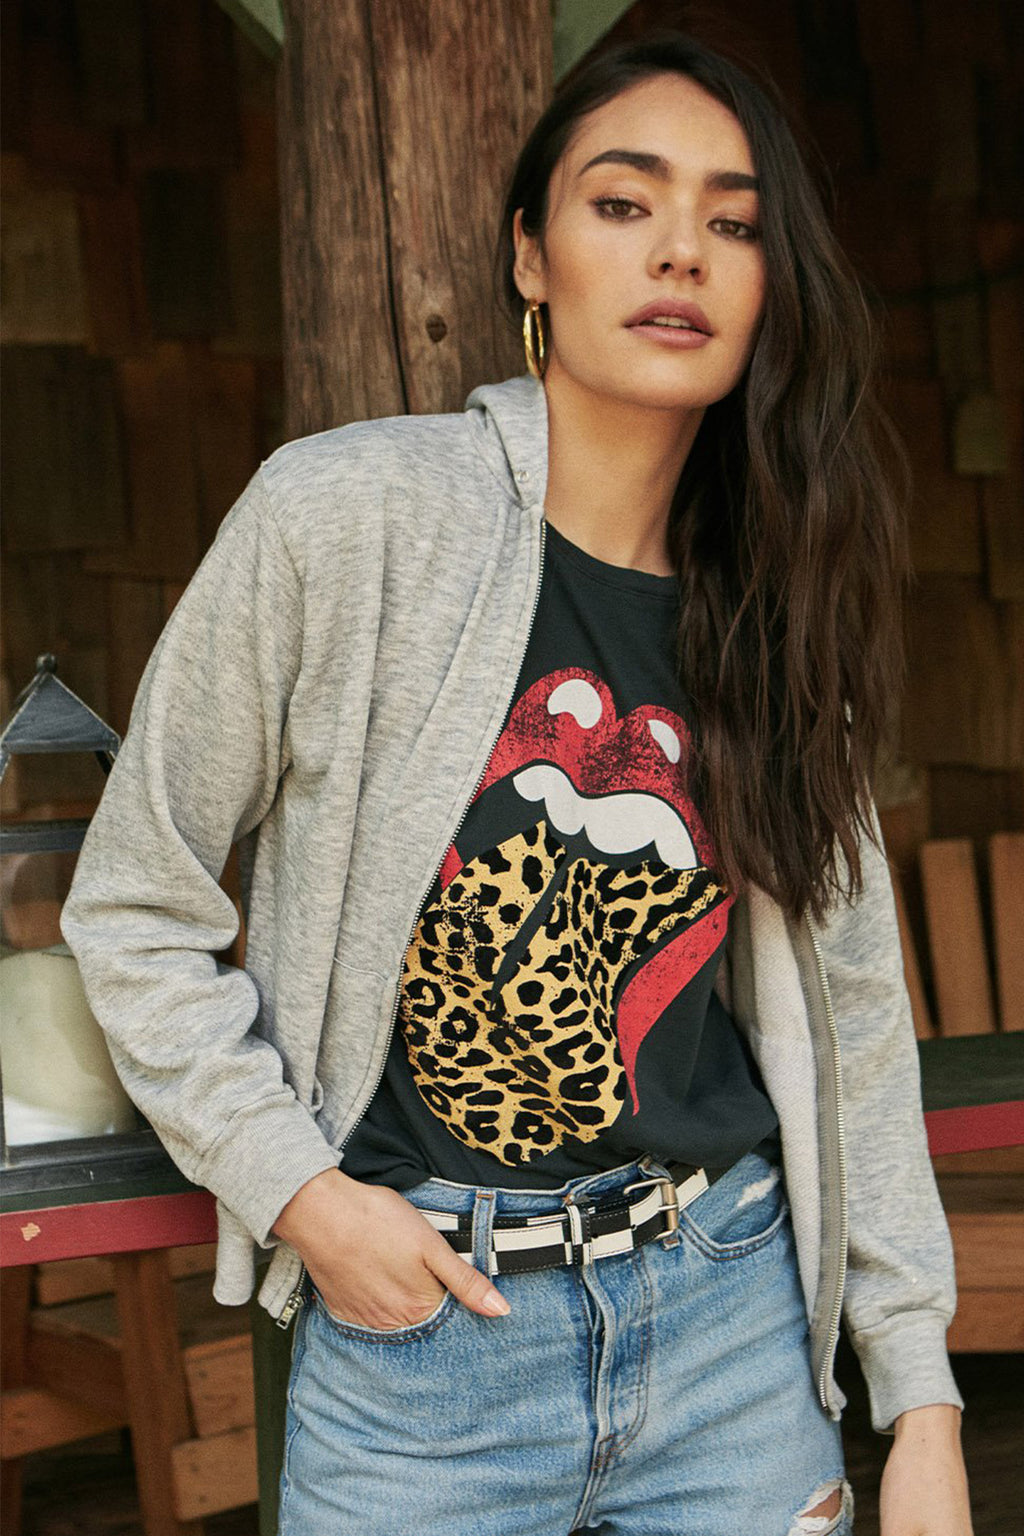 Rolling Stones Flocked Leopard Tongue Tour Tee - Boho Bum Island Clothing Swimwear Bohemian Boho west palm beach  Miami florida  fall fashion spring fashion online shopping ootd blogger style swim boutique